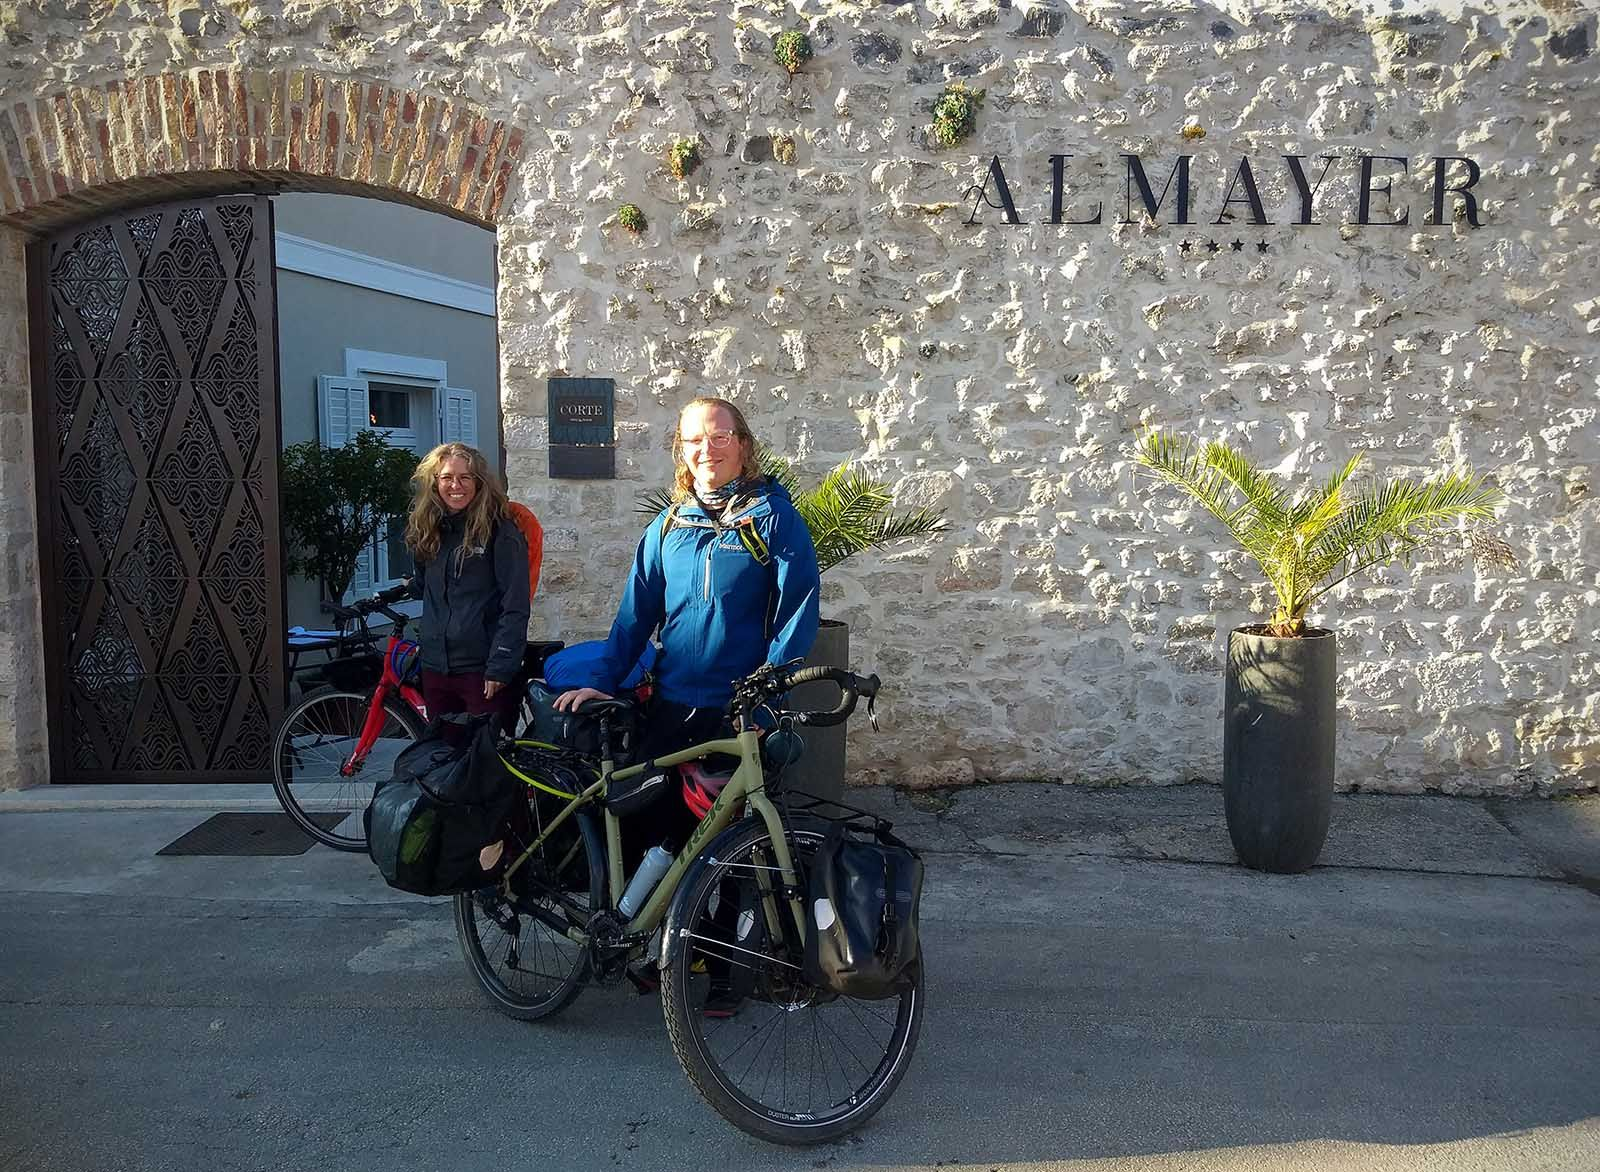 Almayer Cycling